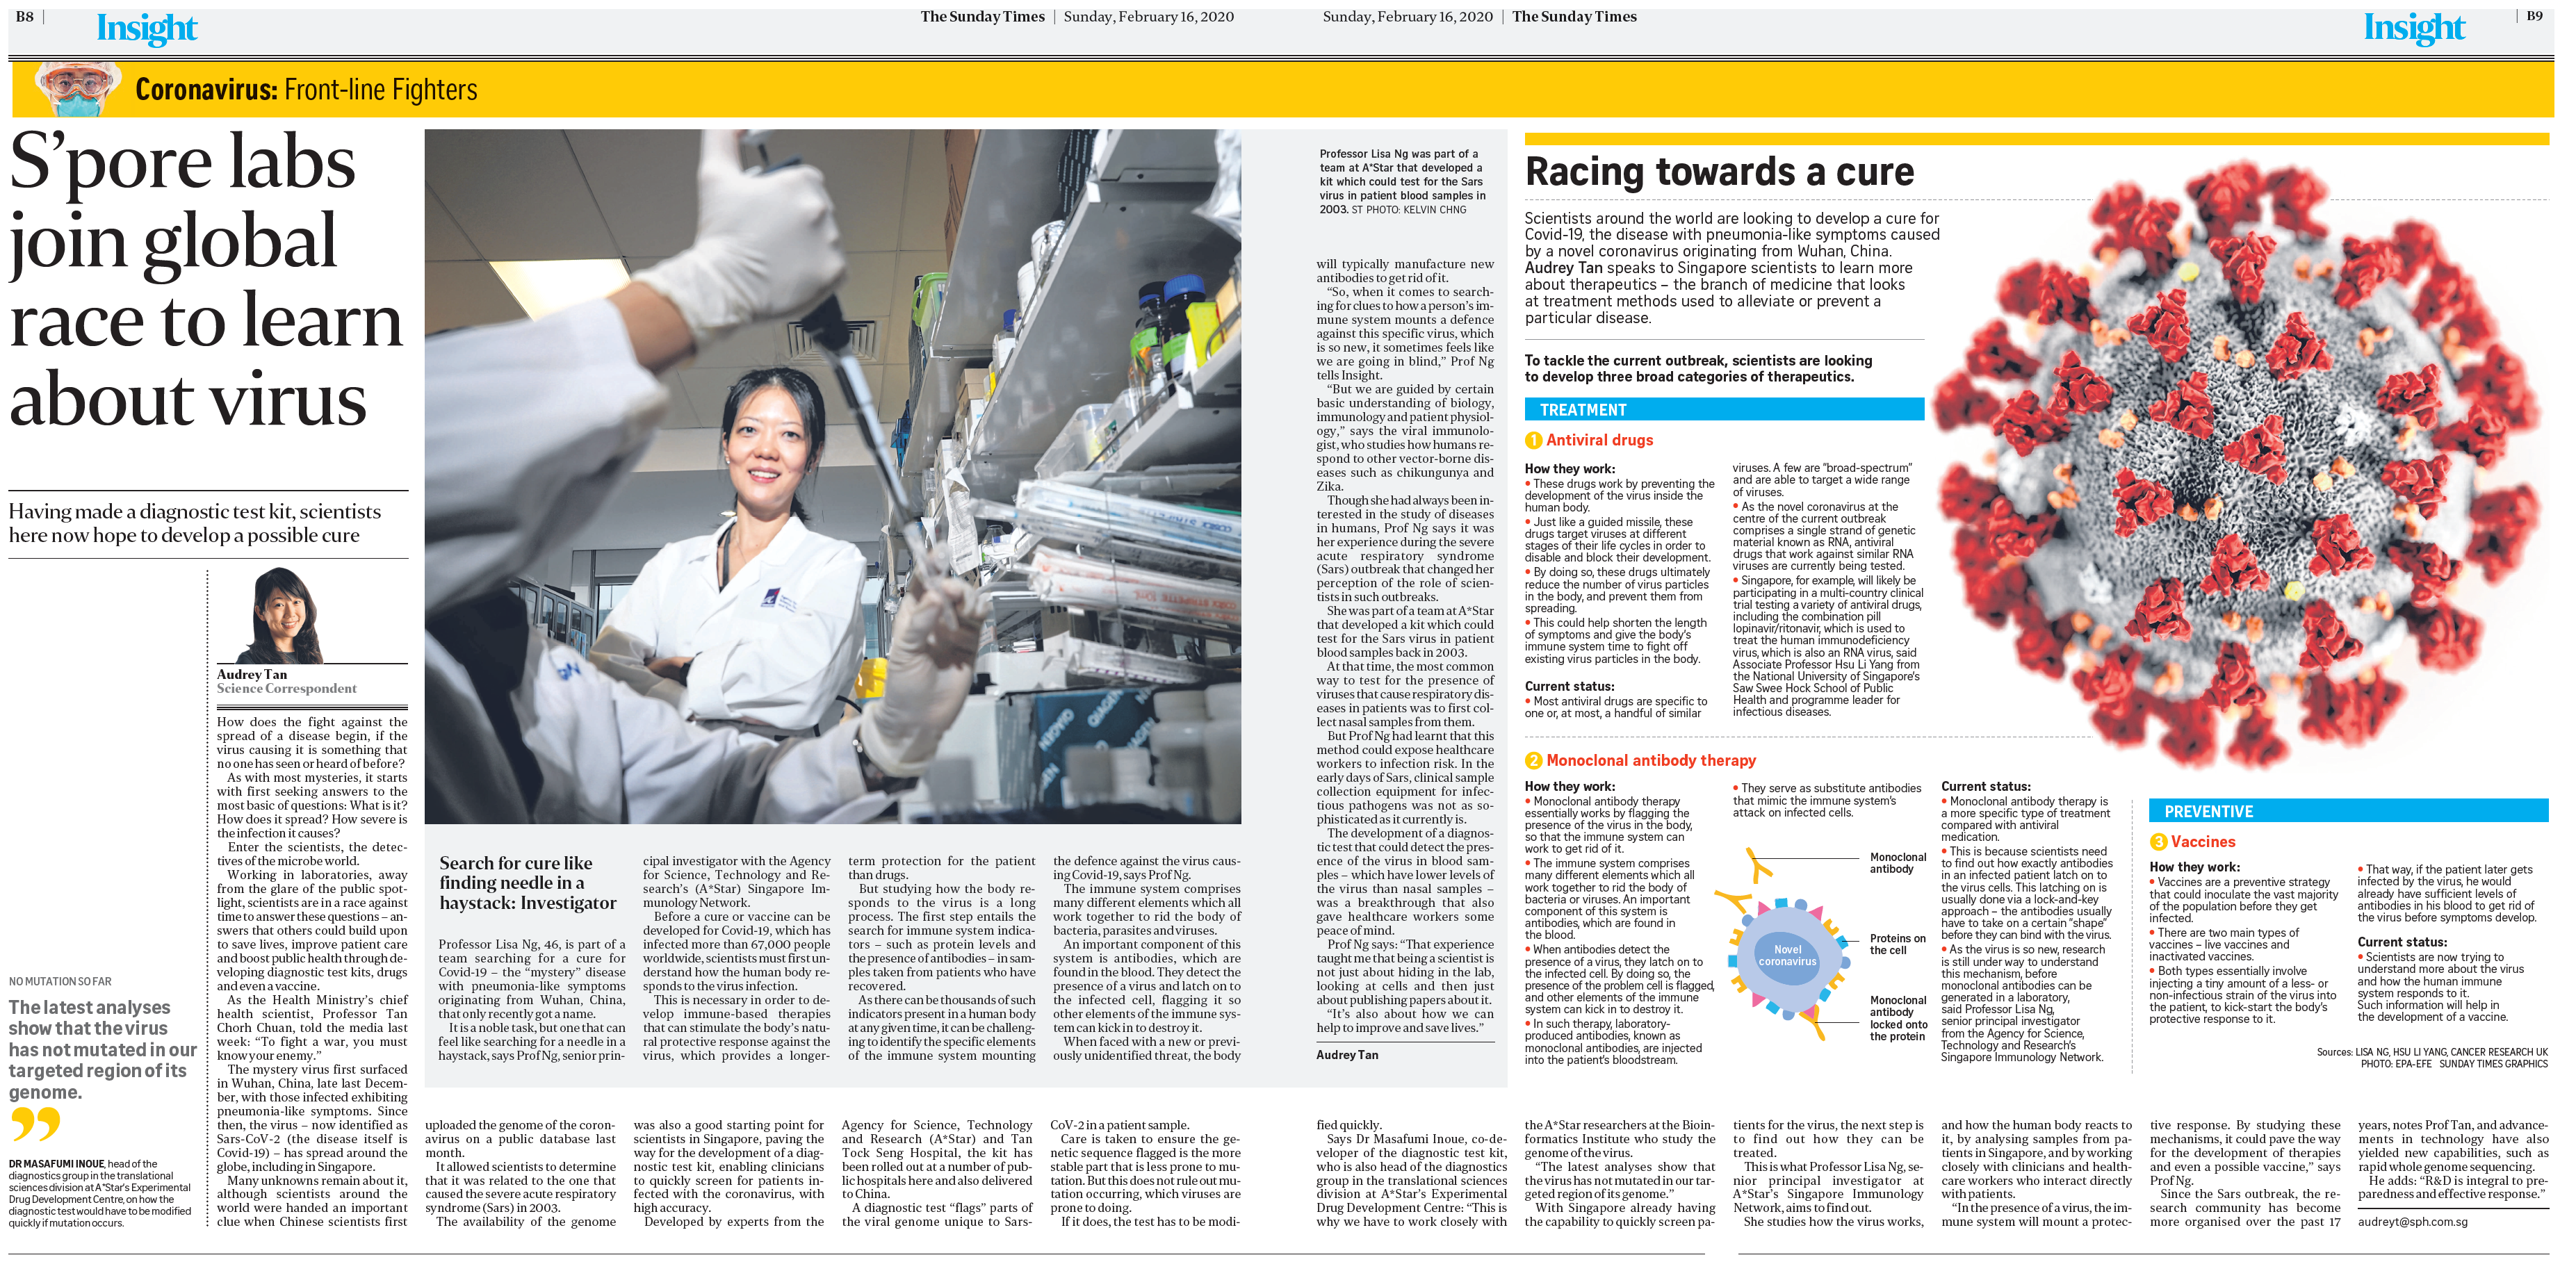 S'pore labs join global race to learn about virus (The Sunday Times, 16 Feb 2020, pB8-9)